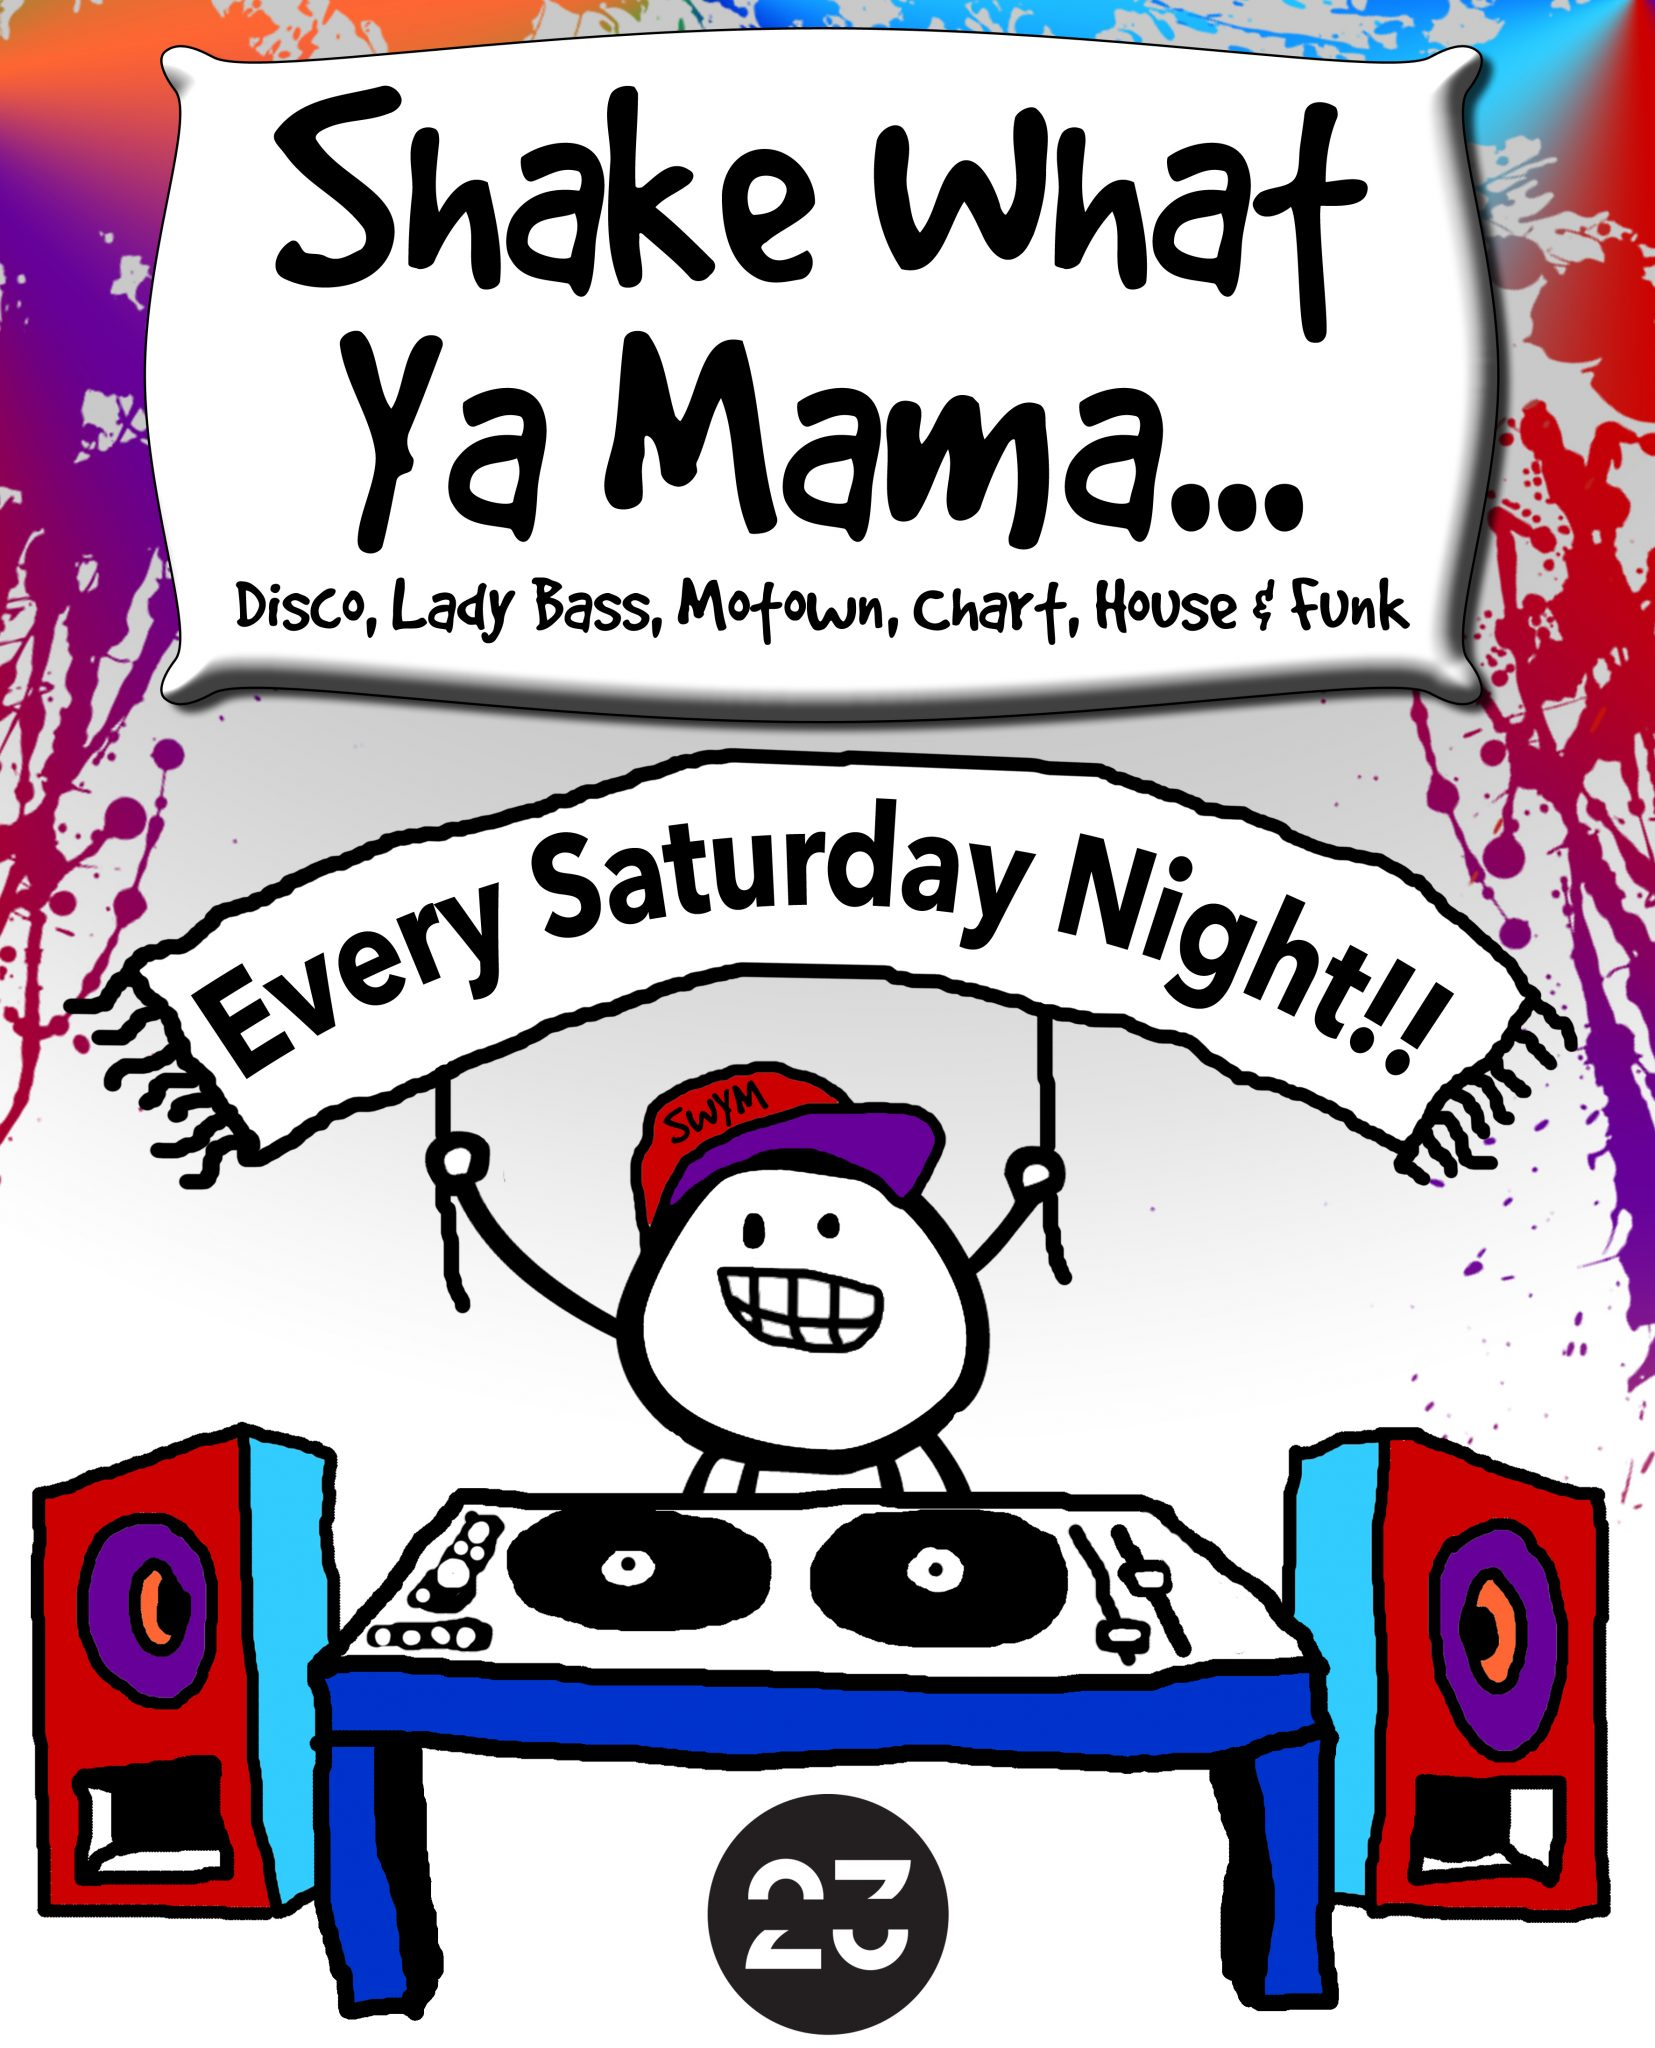 Shake What Ya Mama – Every Saturday Night! - Discover Frome